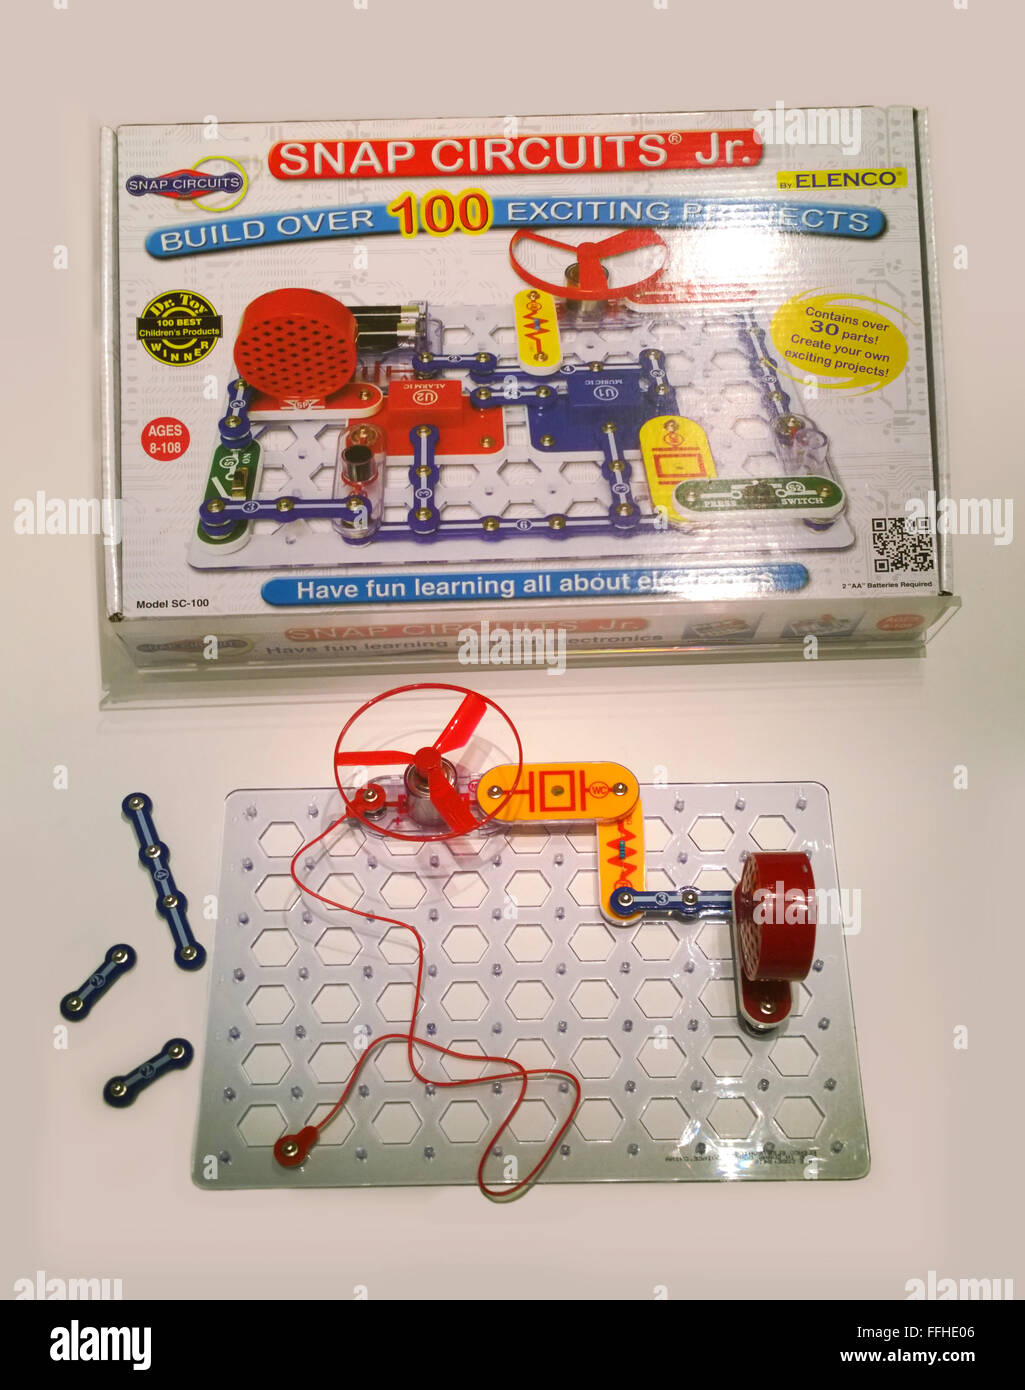 Games Kit Stock Photos Images Alamy Learn About Electronics With Snap Circuits Junior Rochester New York Strong Museum Of Play